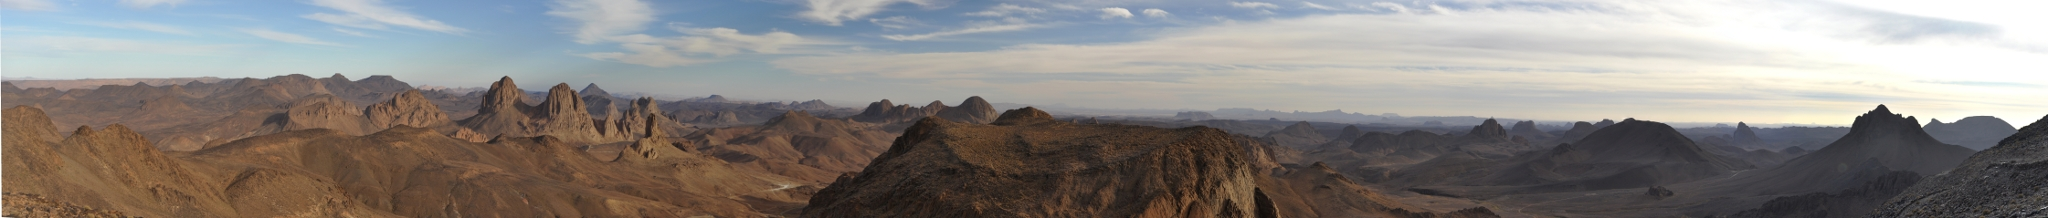 Panorama of the Ahaggar mountains